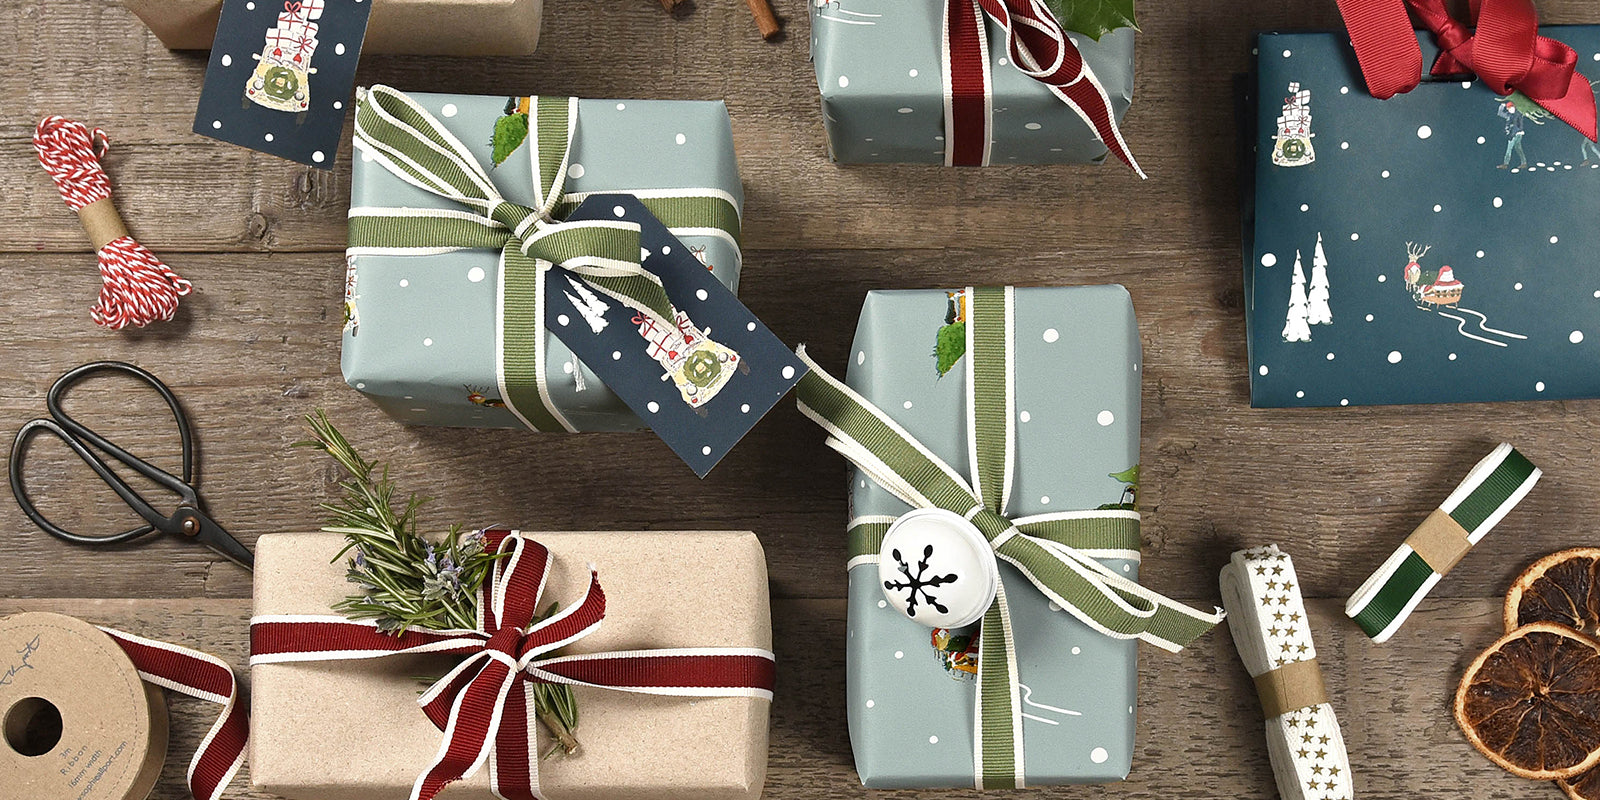 Christmas Gift Wrapping by Sophie Allport